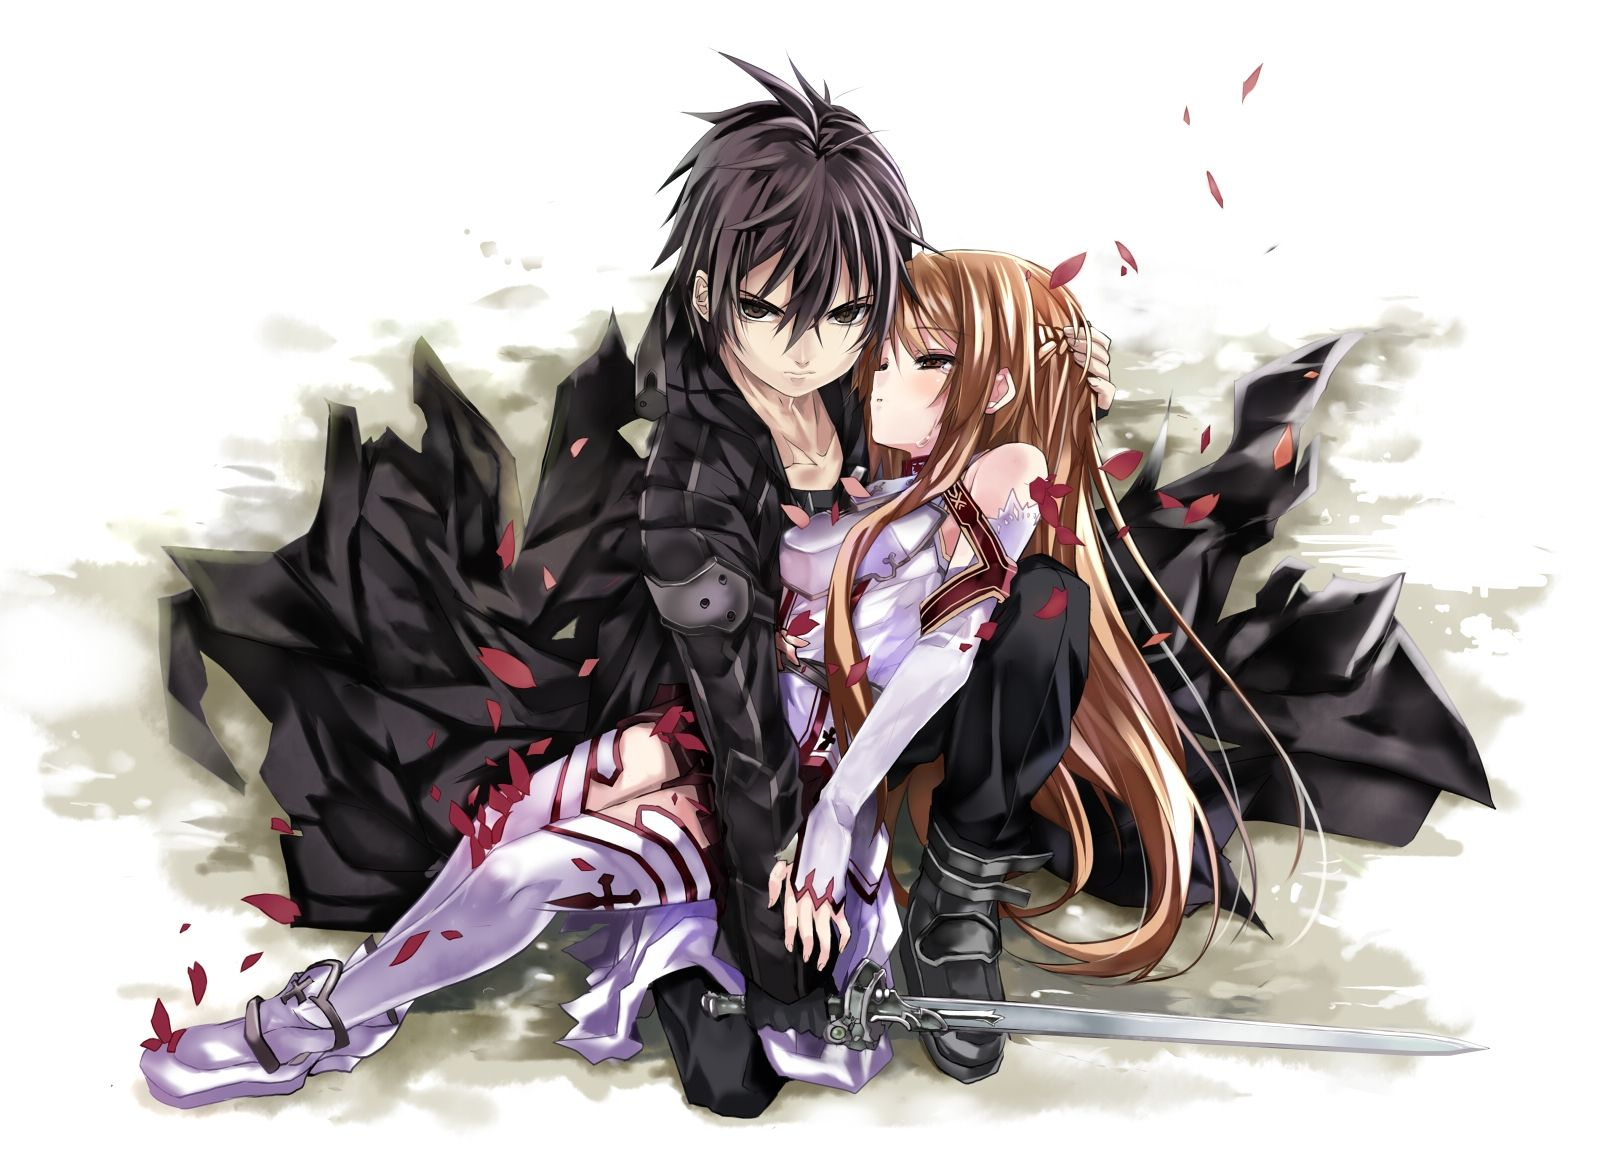 Anime Love Wallpapers Top Free Anime Love Backgrounds Wallpaperaccess